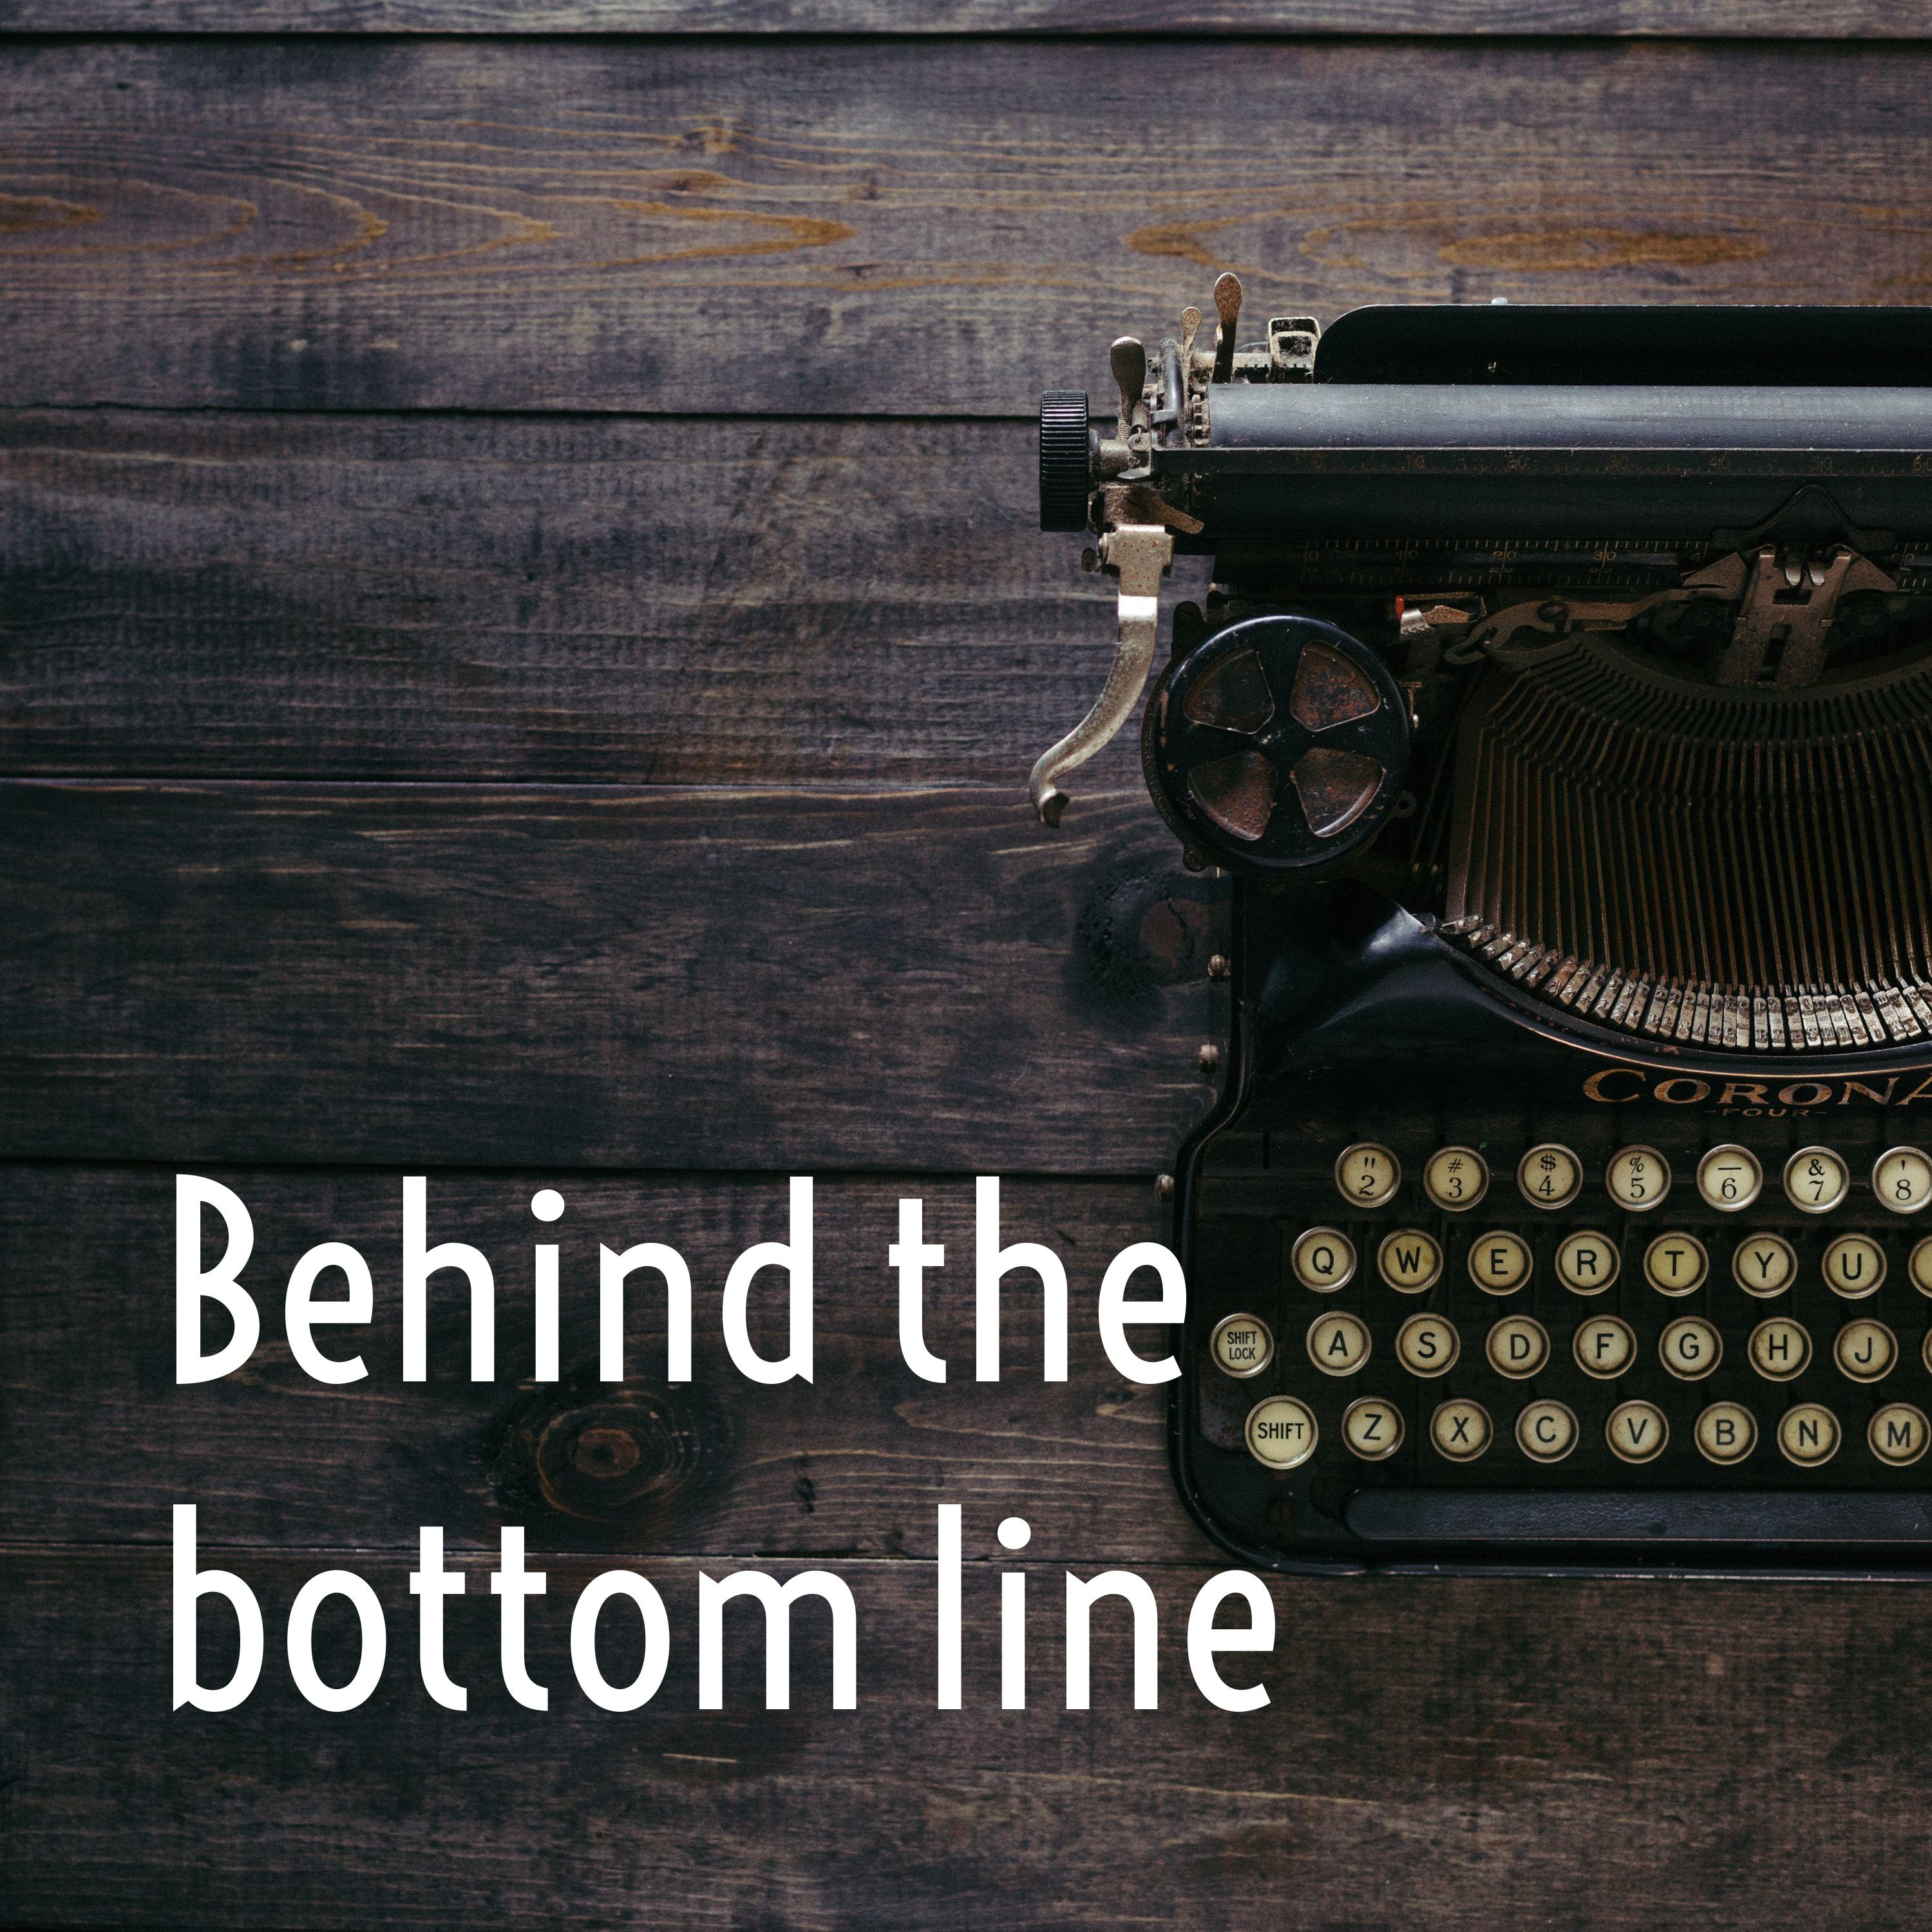 Behind the bottom line